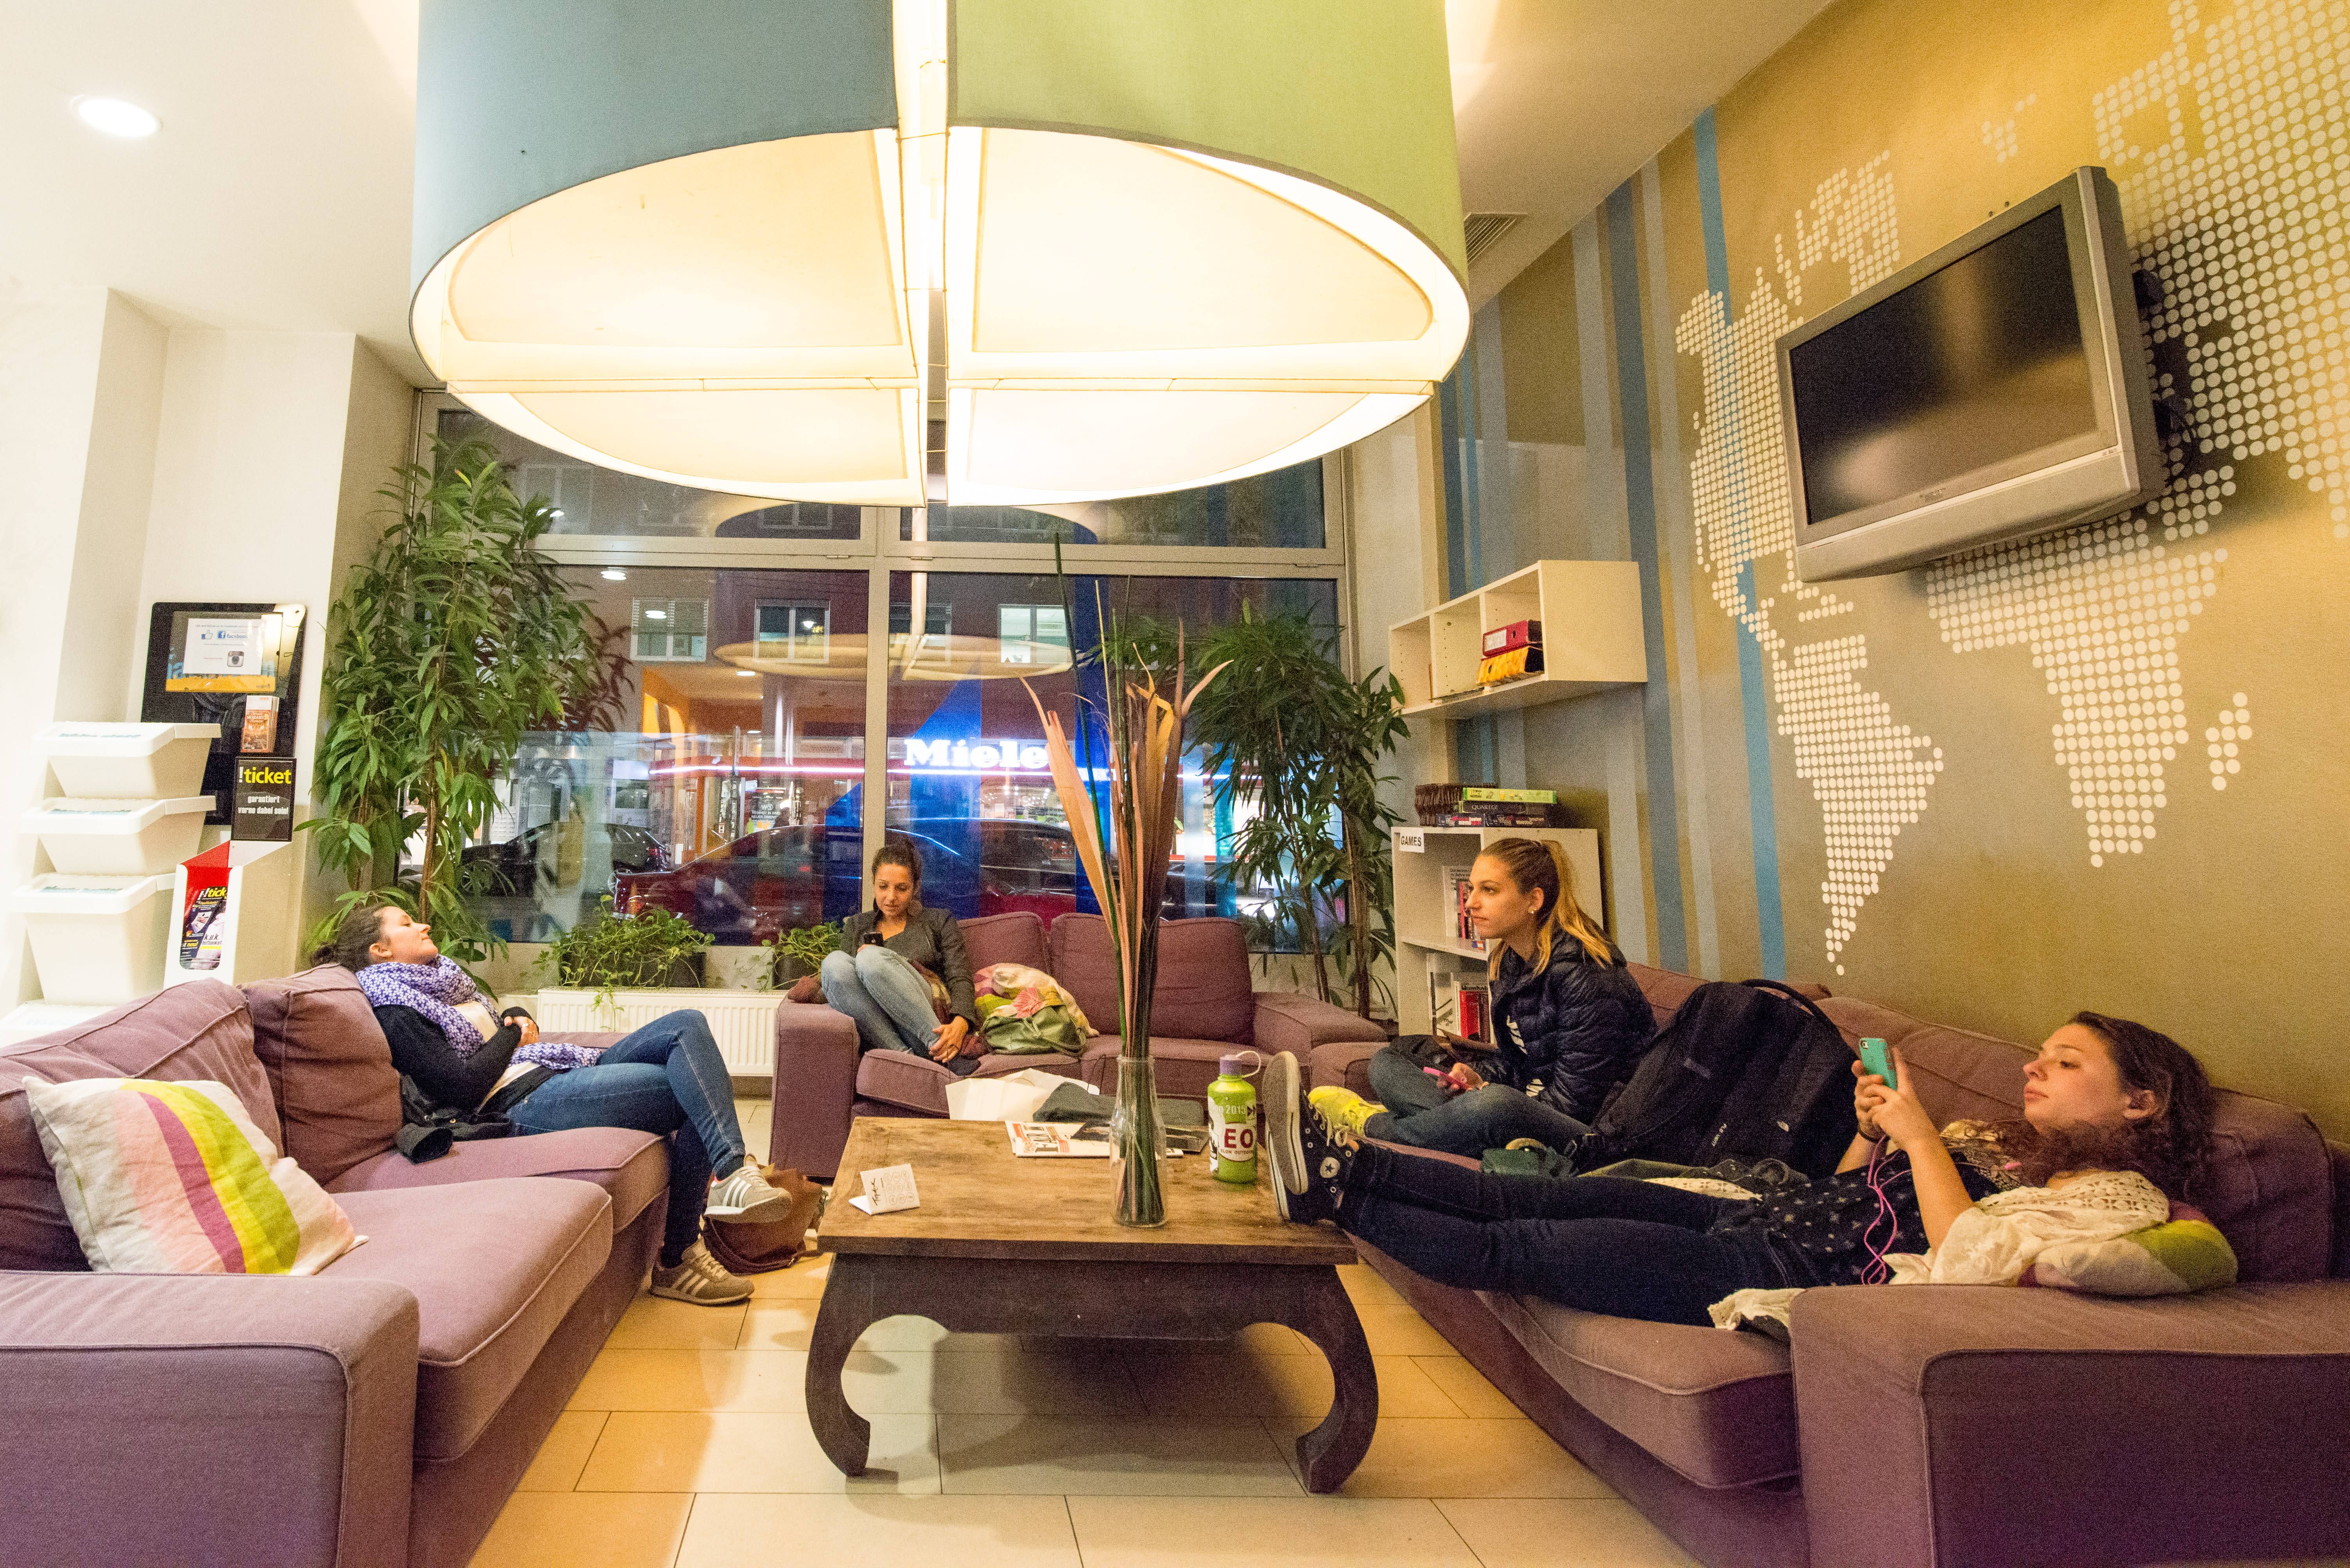 Wombats City Hostel Vienna - The Lounge